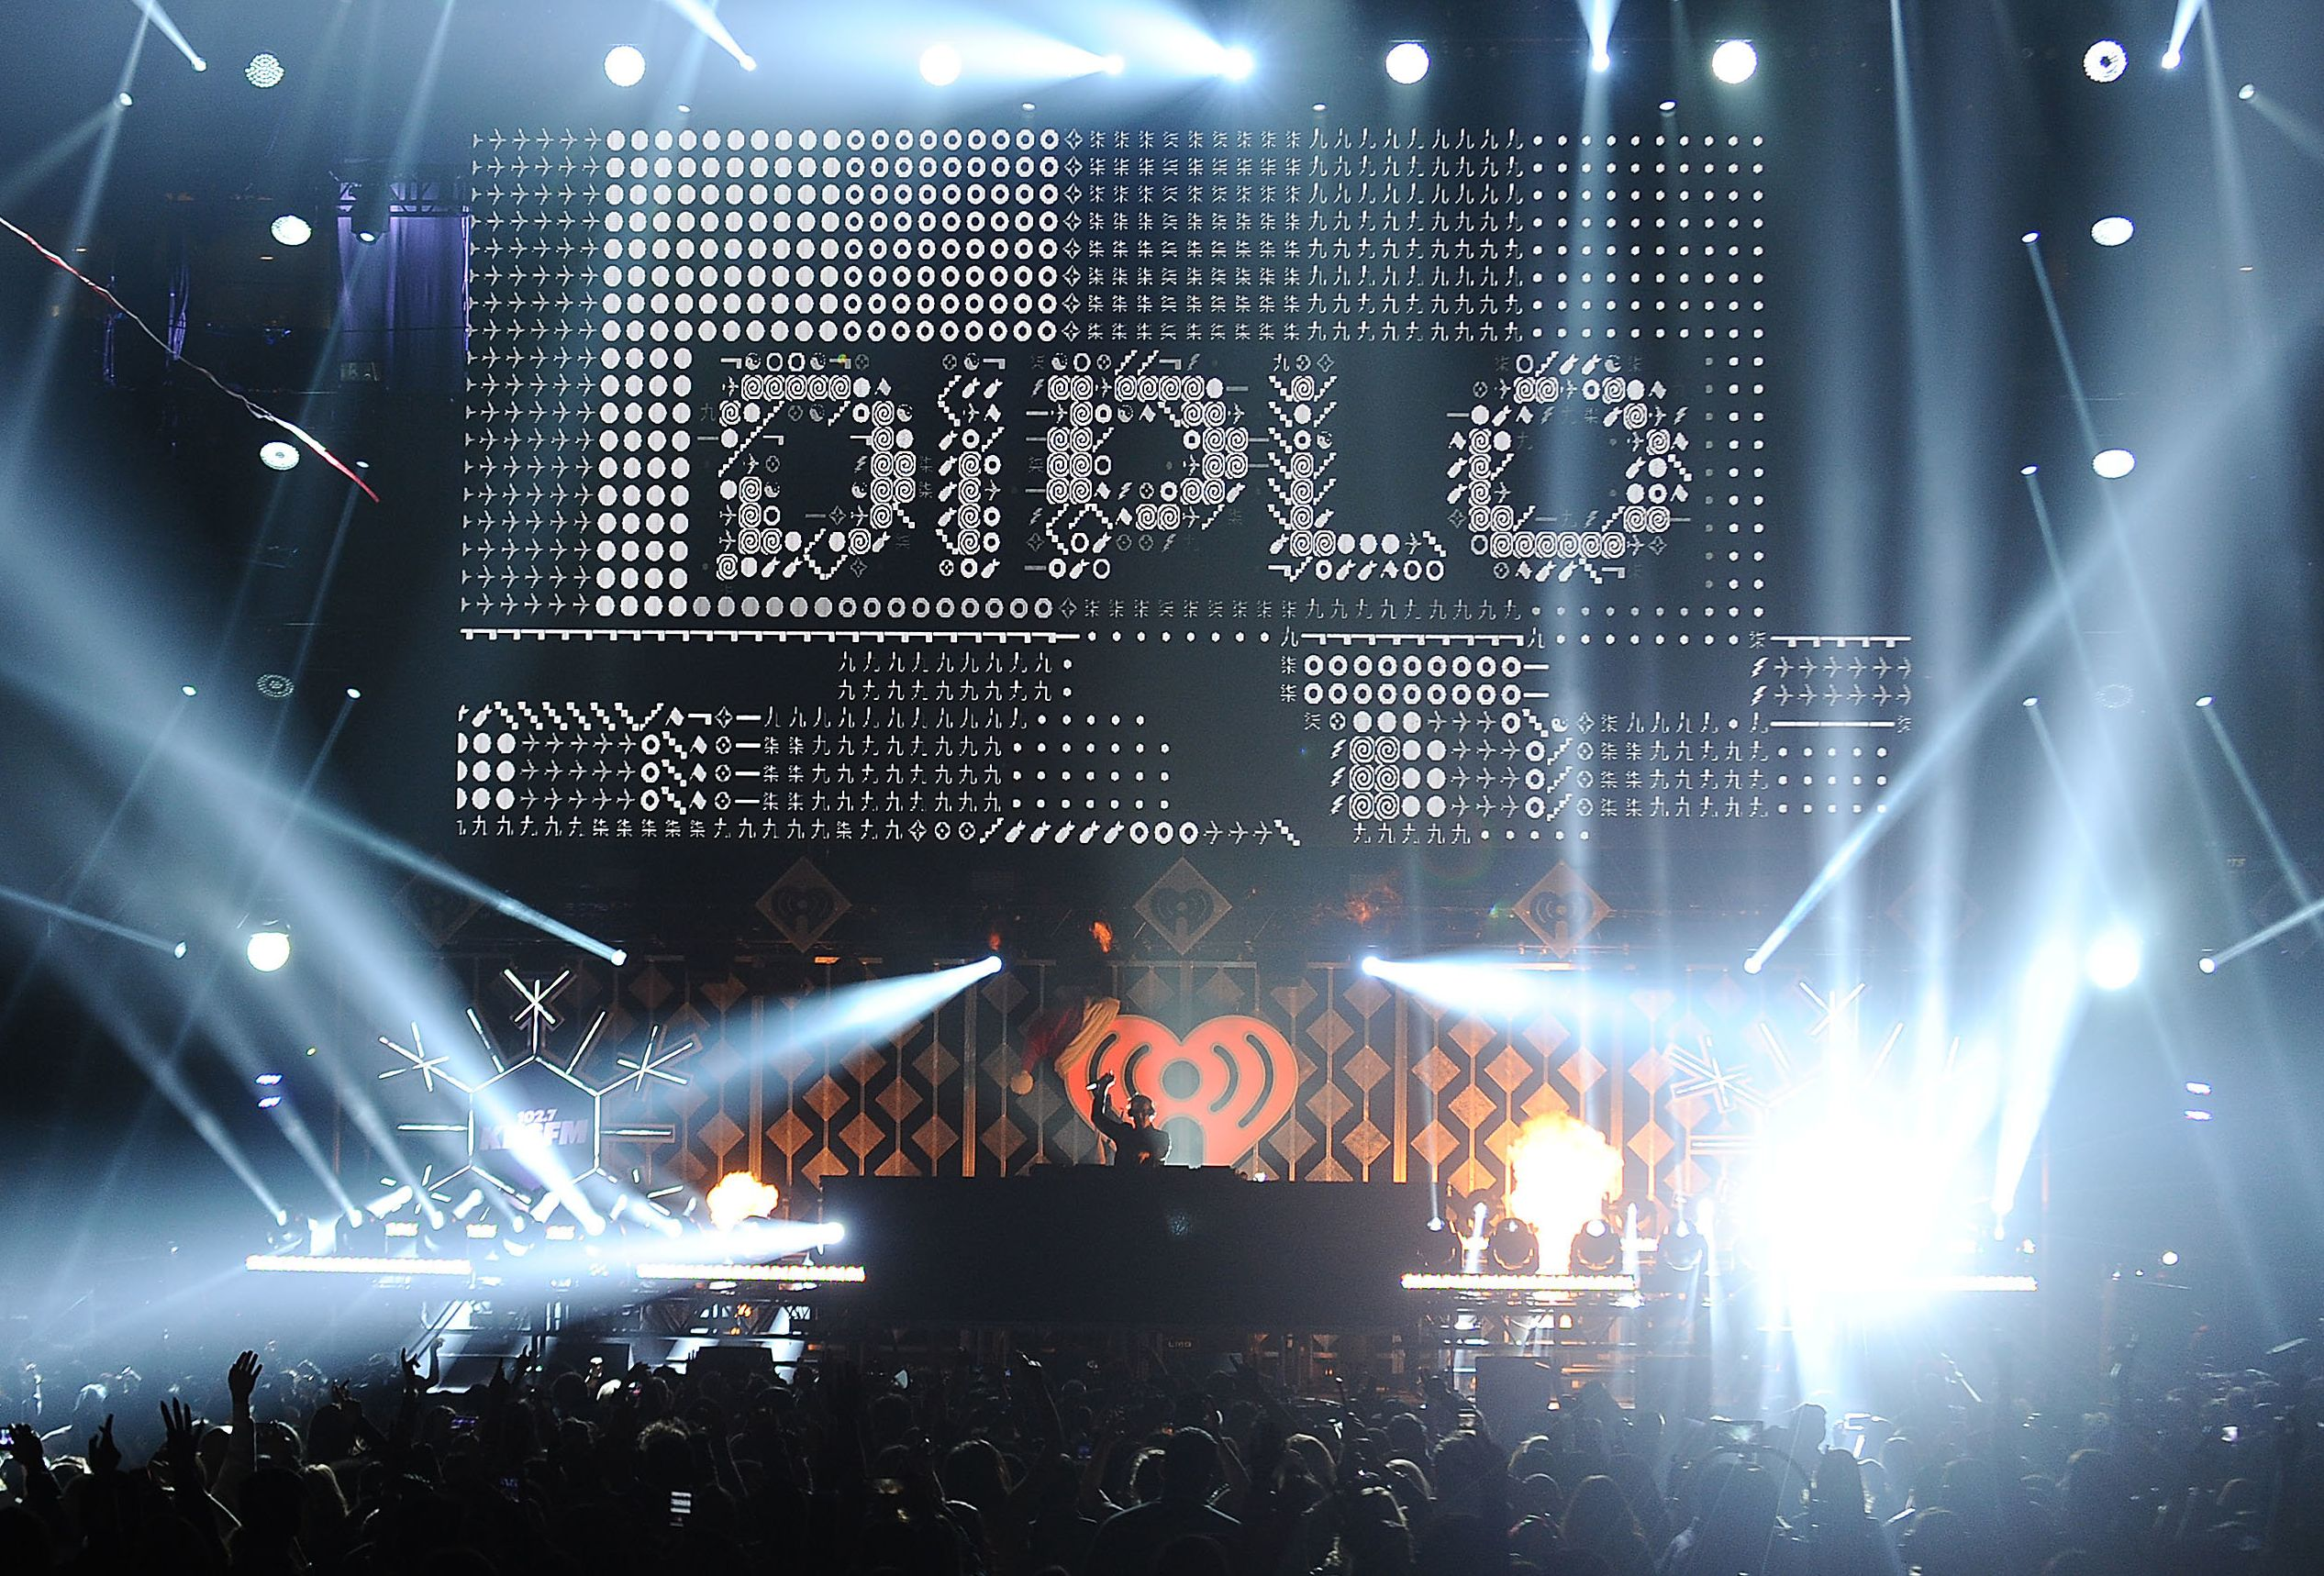 Musician Diplo performs onstage at the Jingle Ball in 2016.